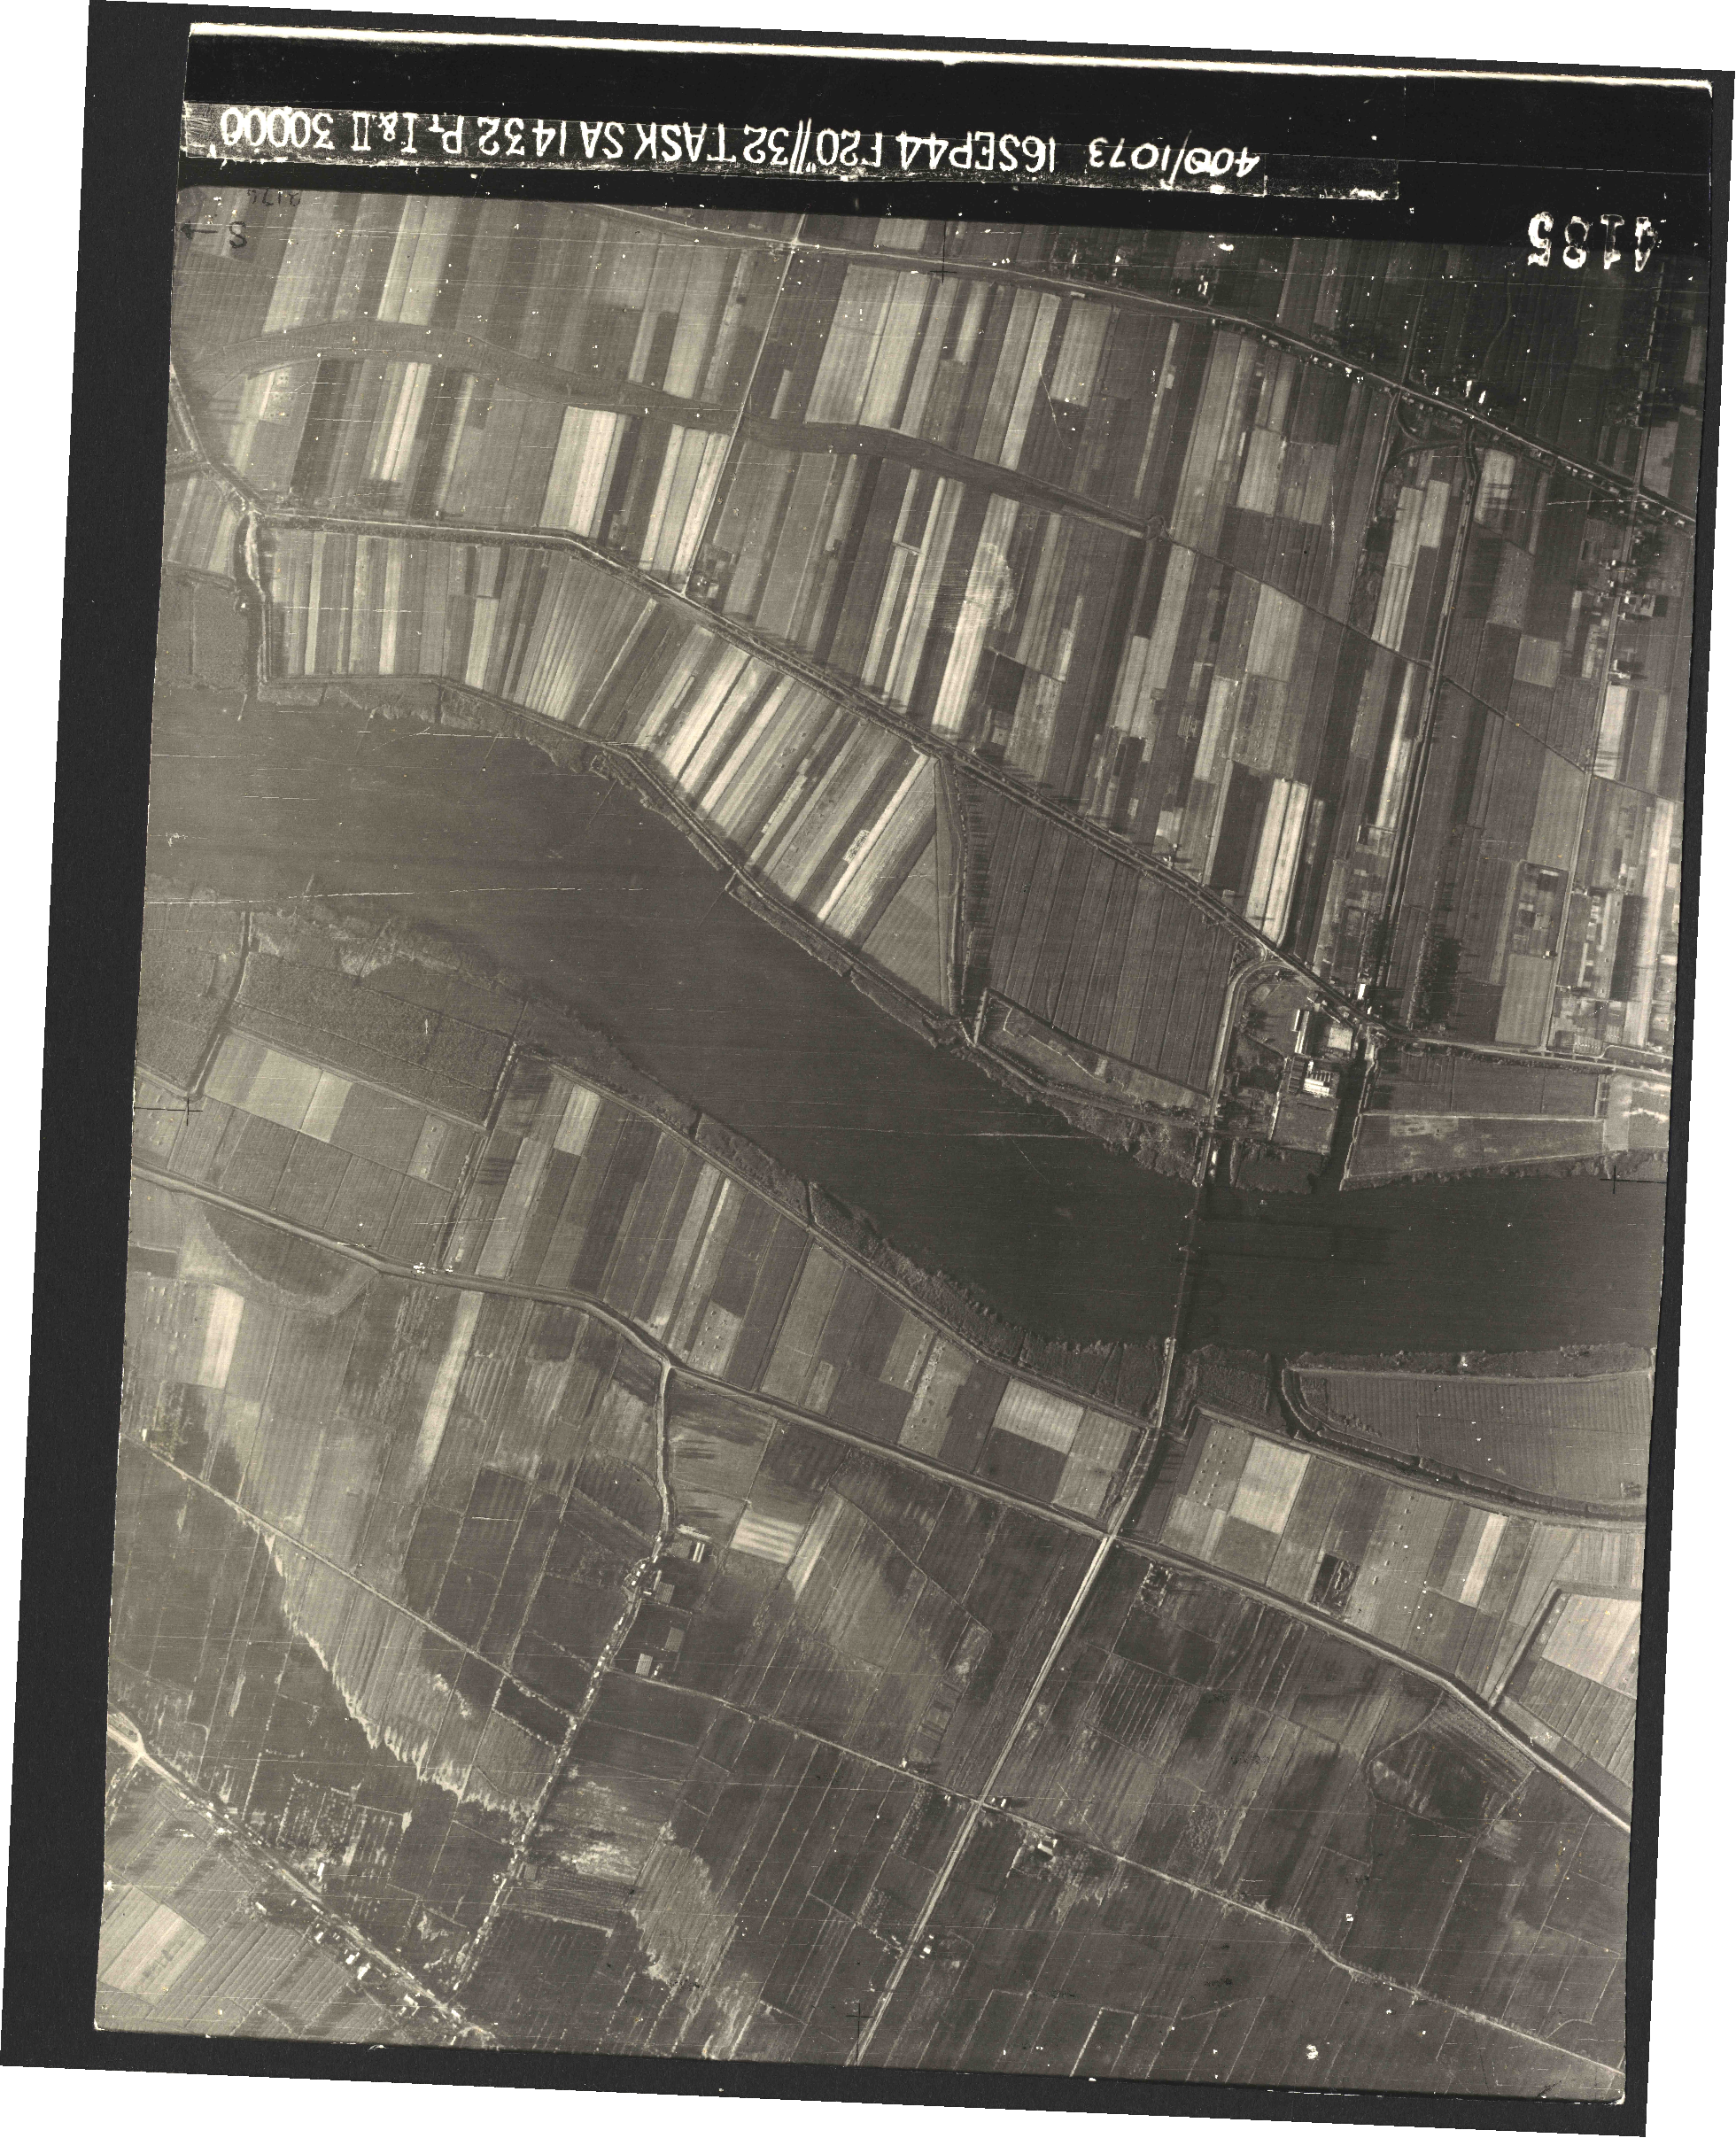 Collection RAF aerial photos 1940-1945 - flight 013, run 01, photo 4185